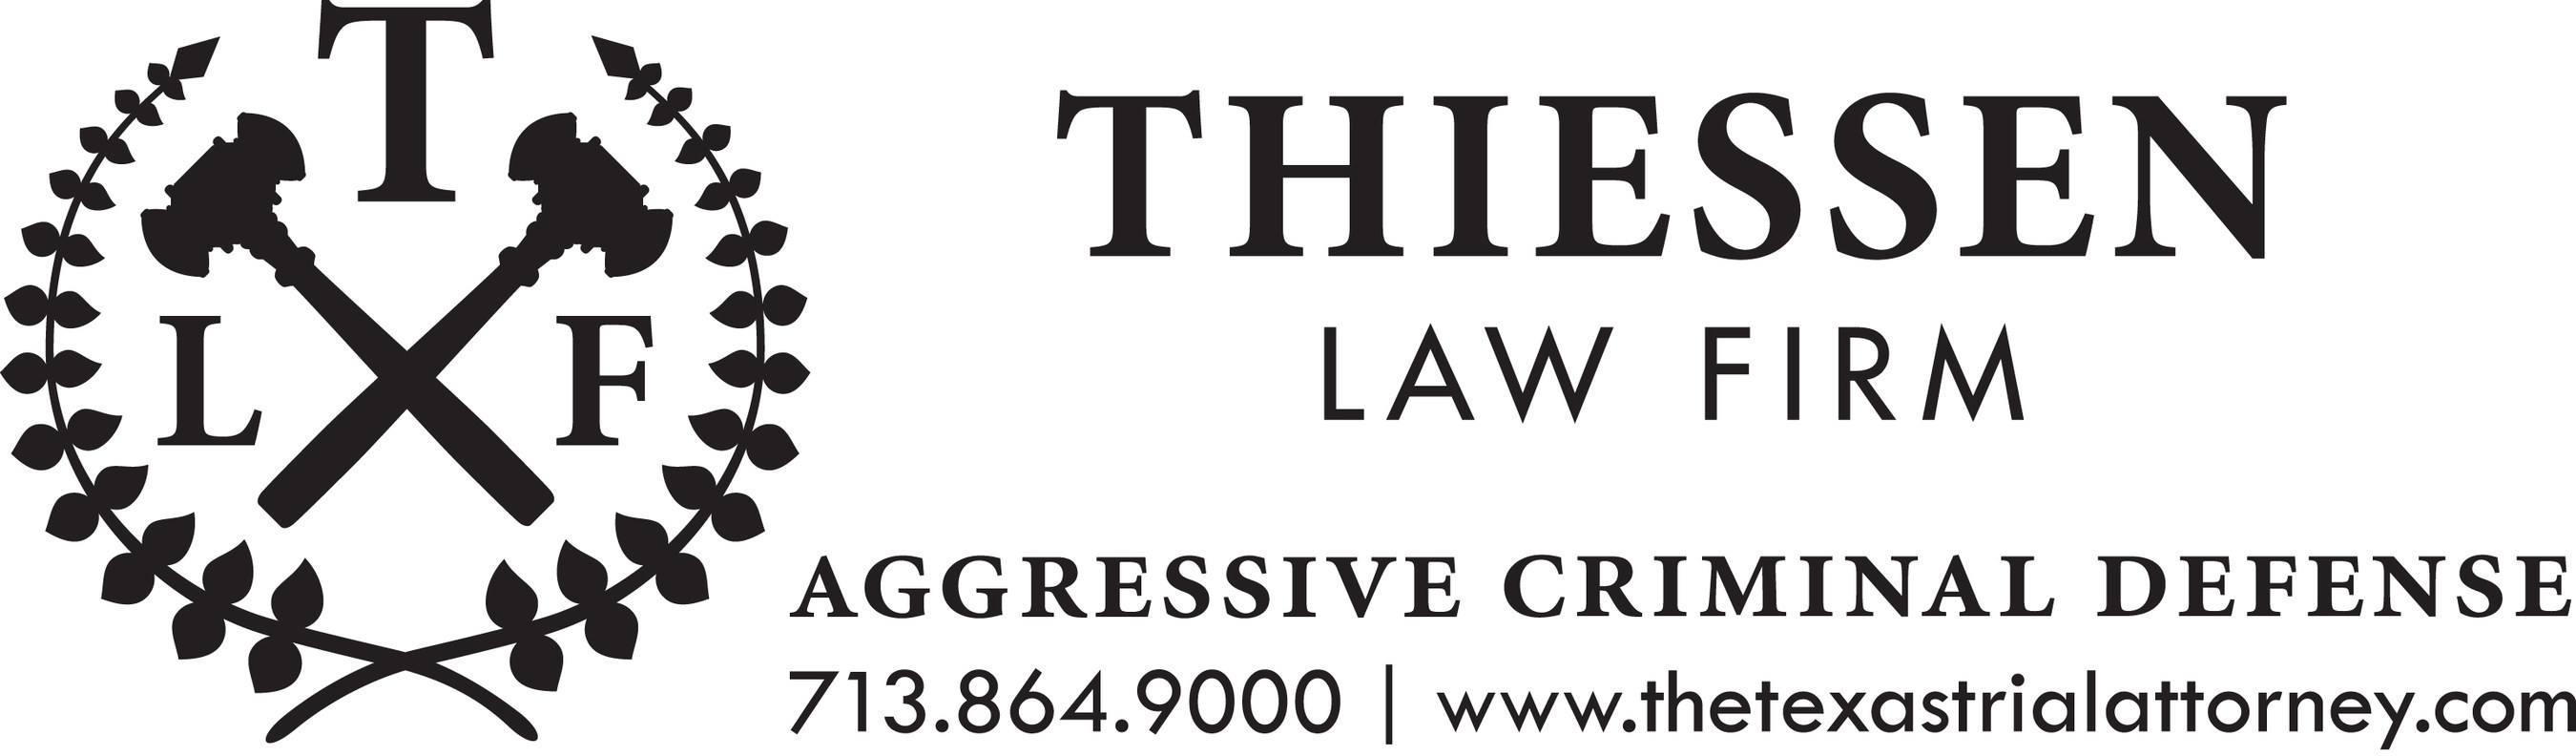 Attorney Thiessen is Board Certified in Criminal Defense